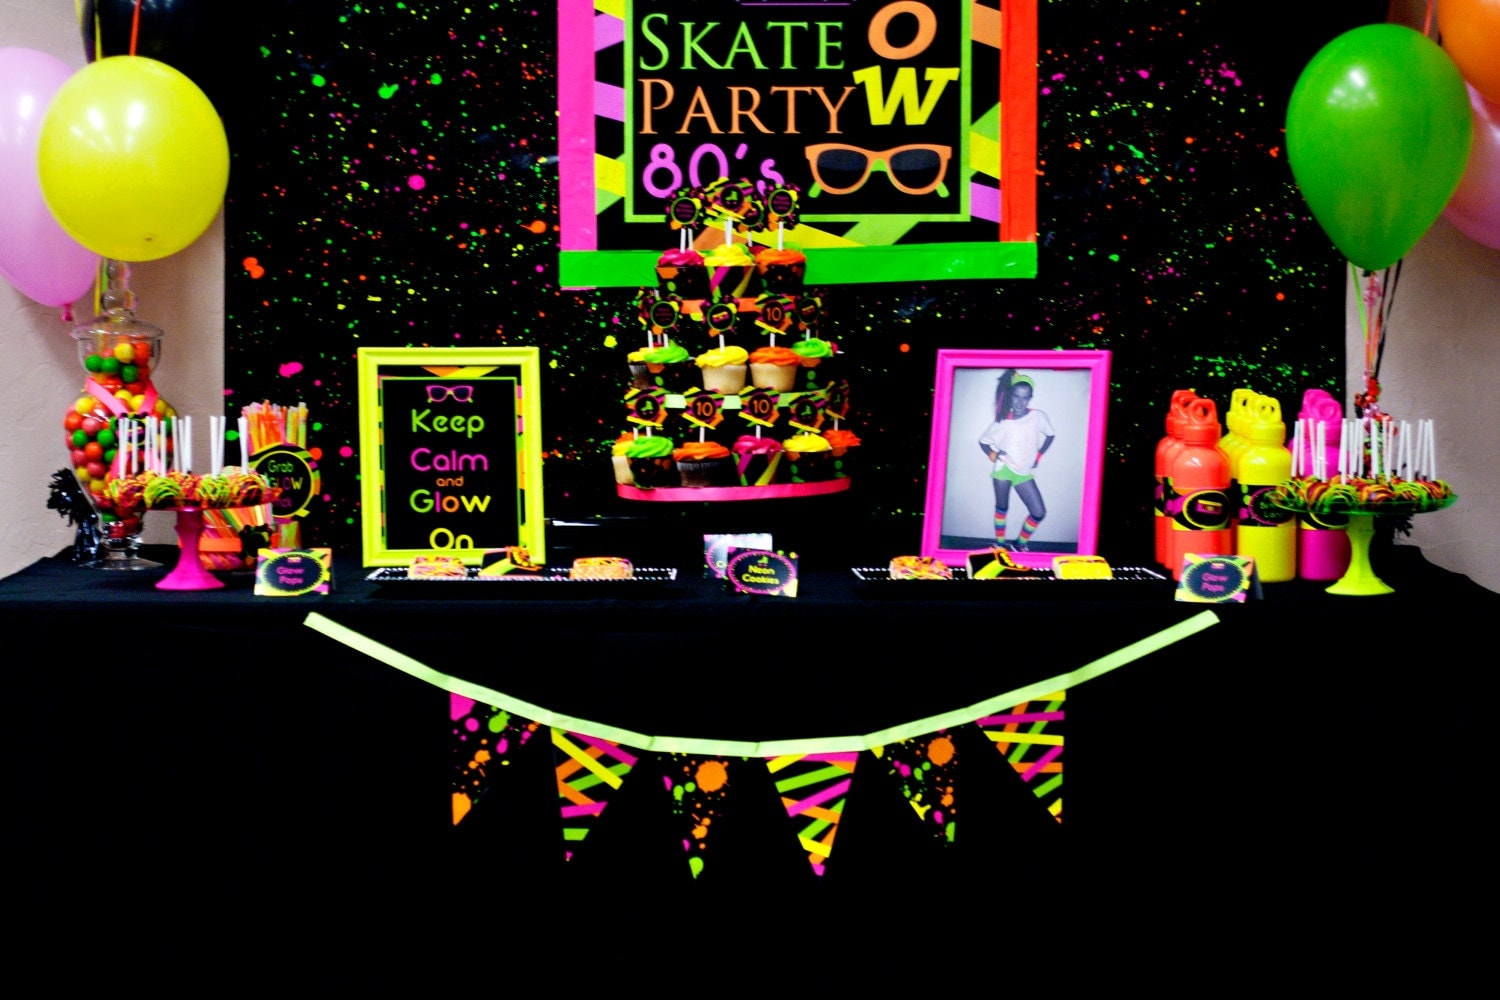 Neon party 80 39 s party skate party by lillianhopedesigns on for 80 birthday party decoration ideas